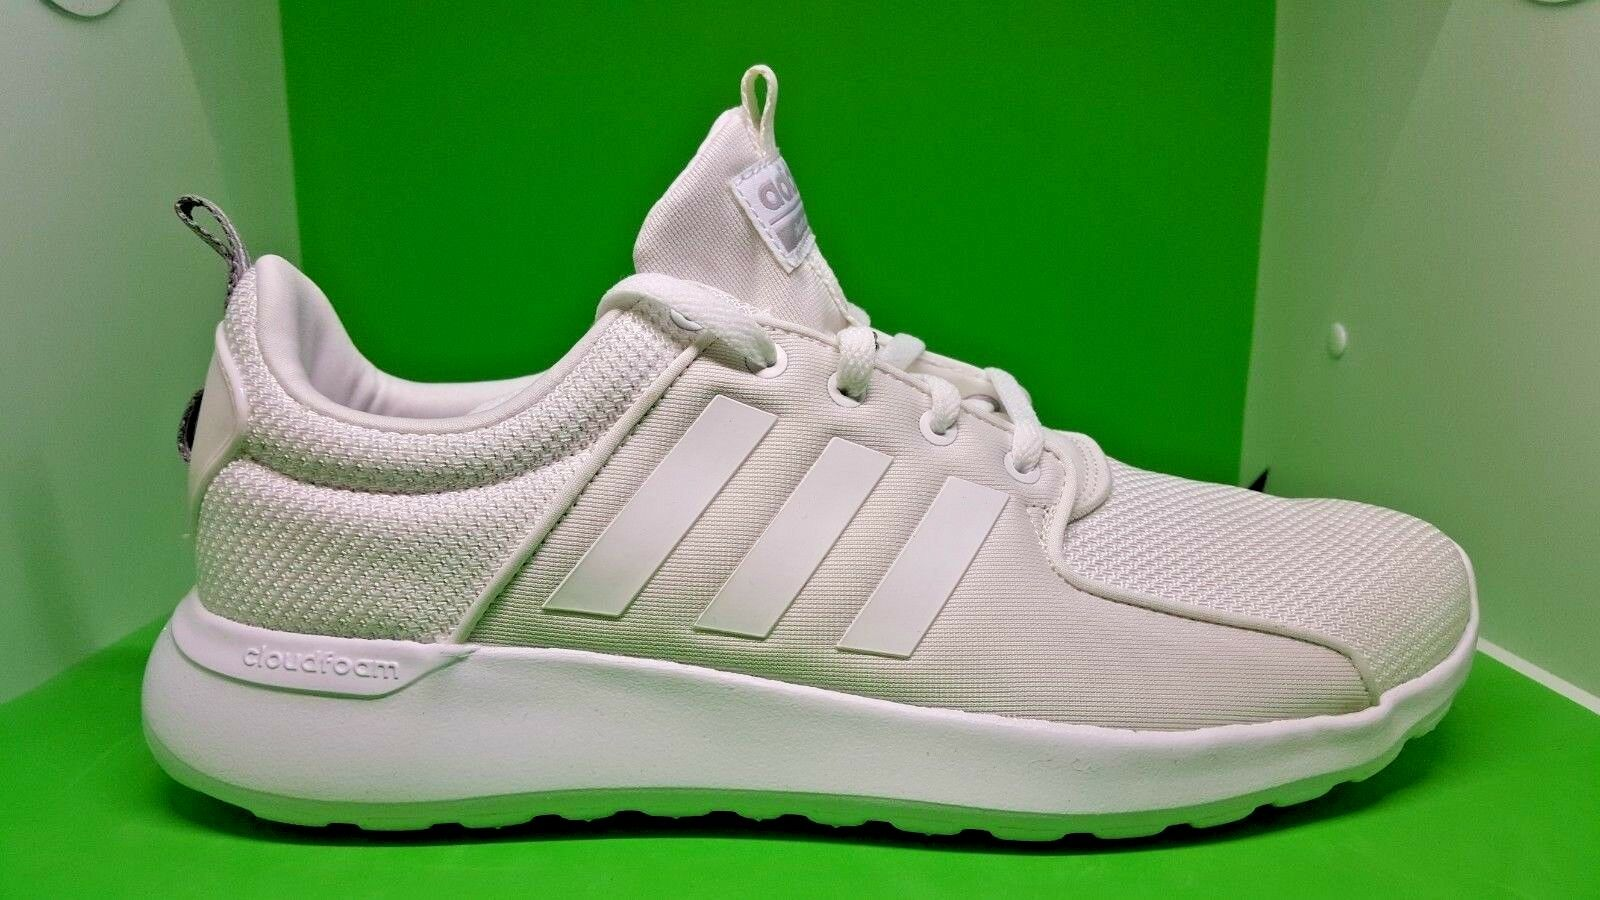 Adidas AW4262 Cloudfoam Lite Racer Running Shoes White Men's size 9